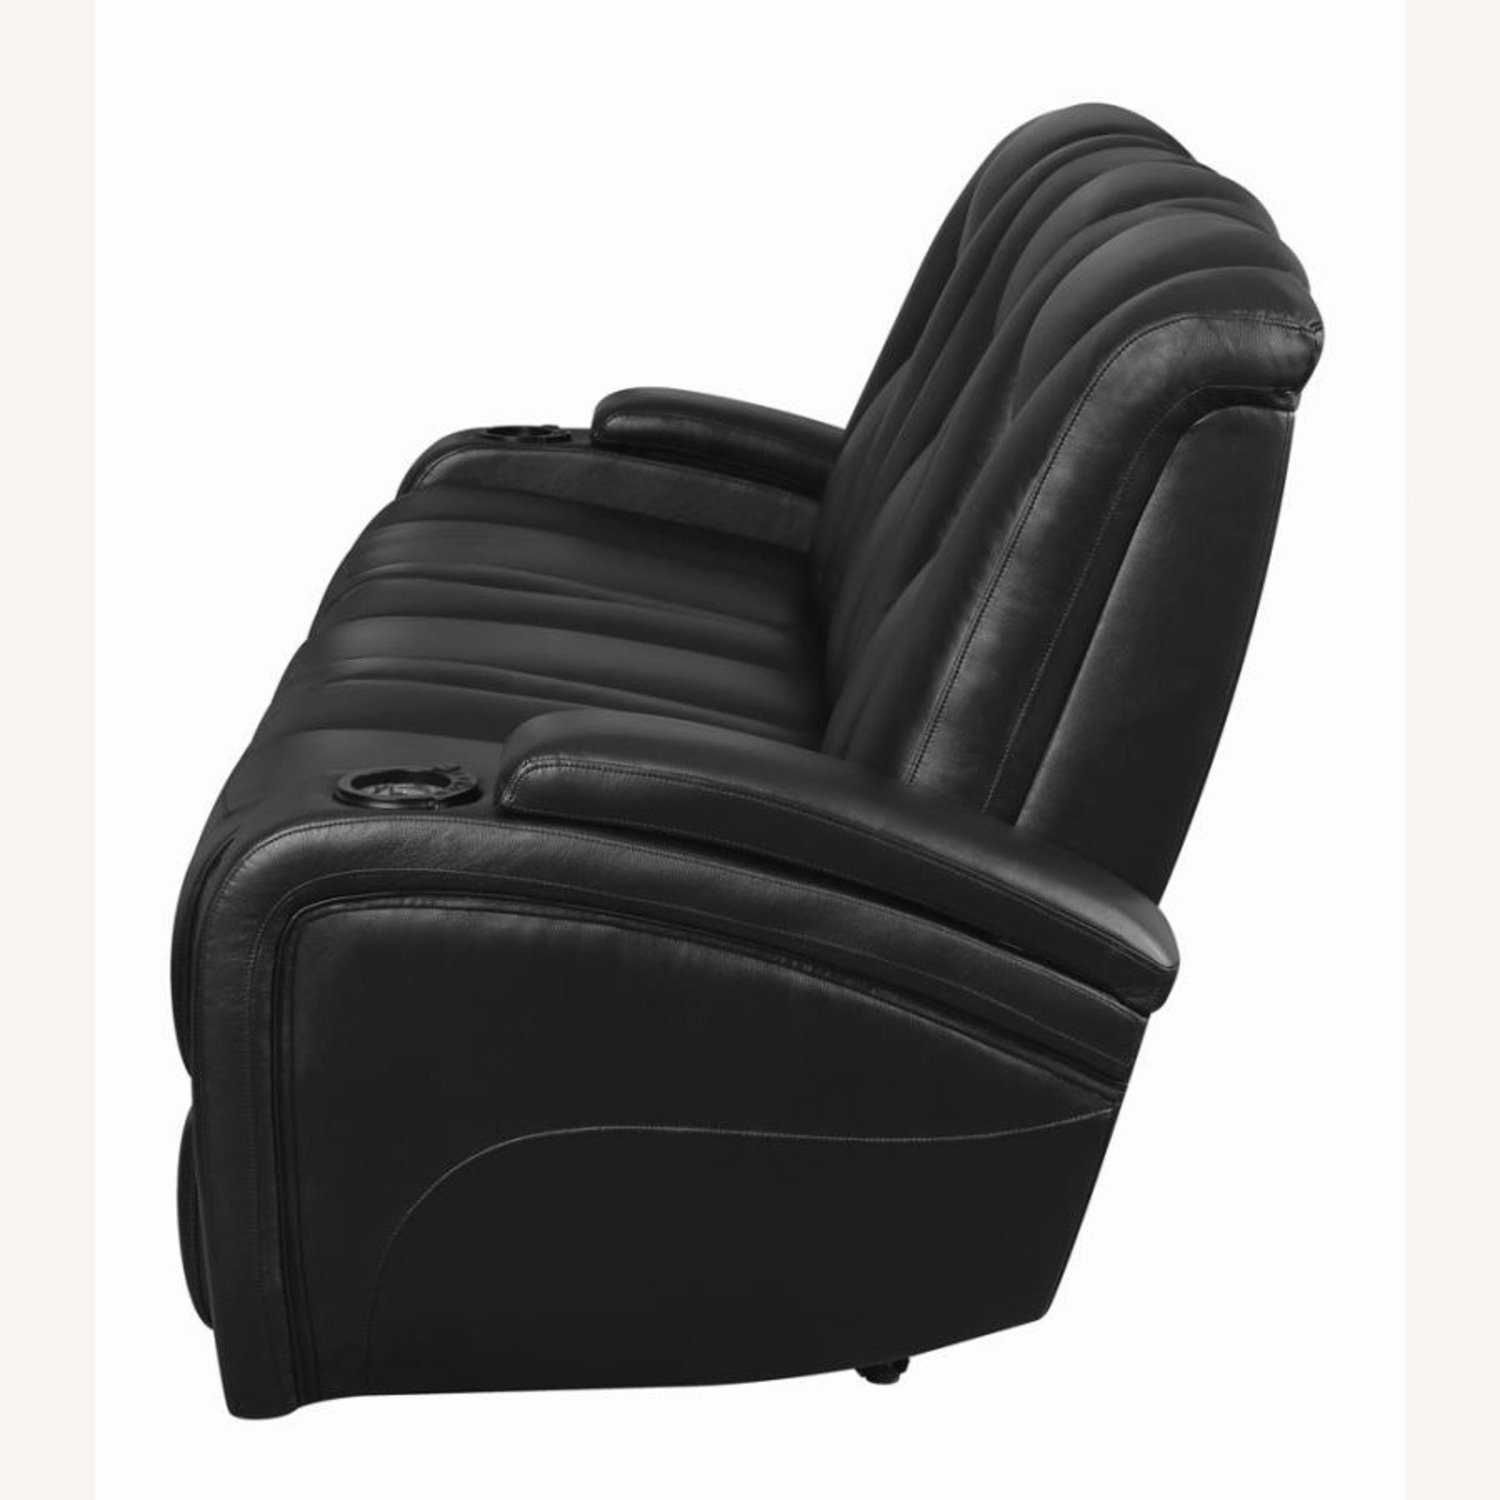 Power2 Sofa In Black Breathable Leather  - image-3